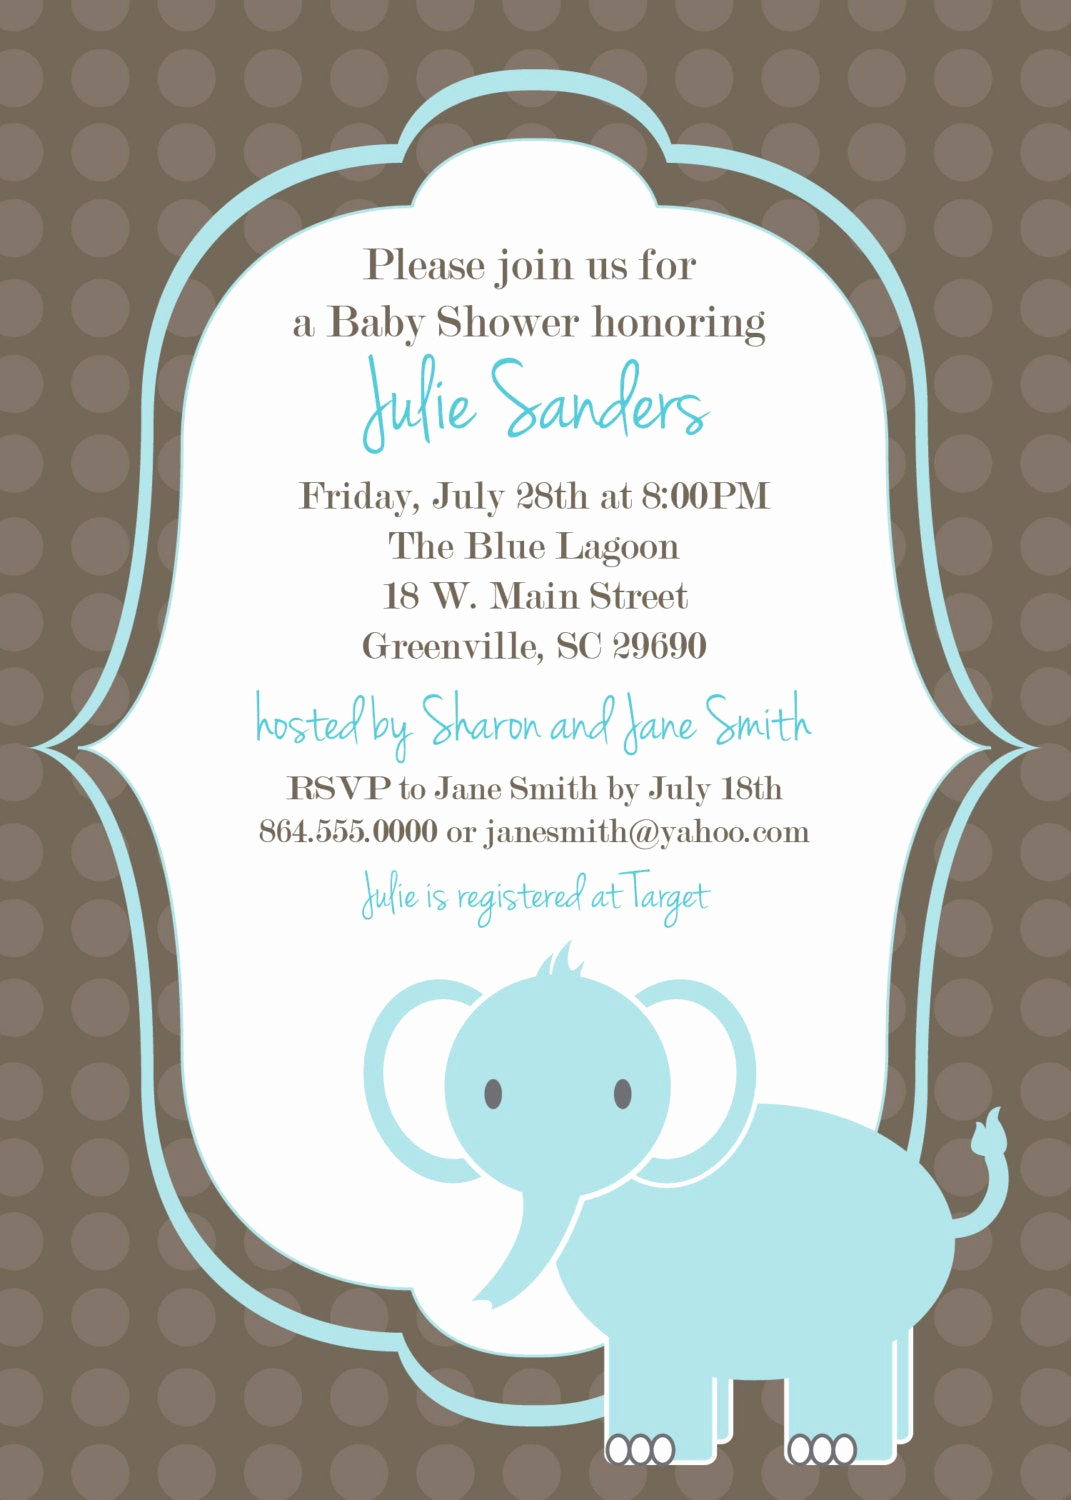 Elephant Baby Shower Invitation Templates Inspirational Printable Baby Shower Invitation Elephant Boy by Ohcreative E